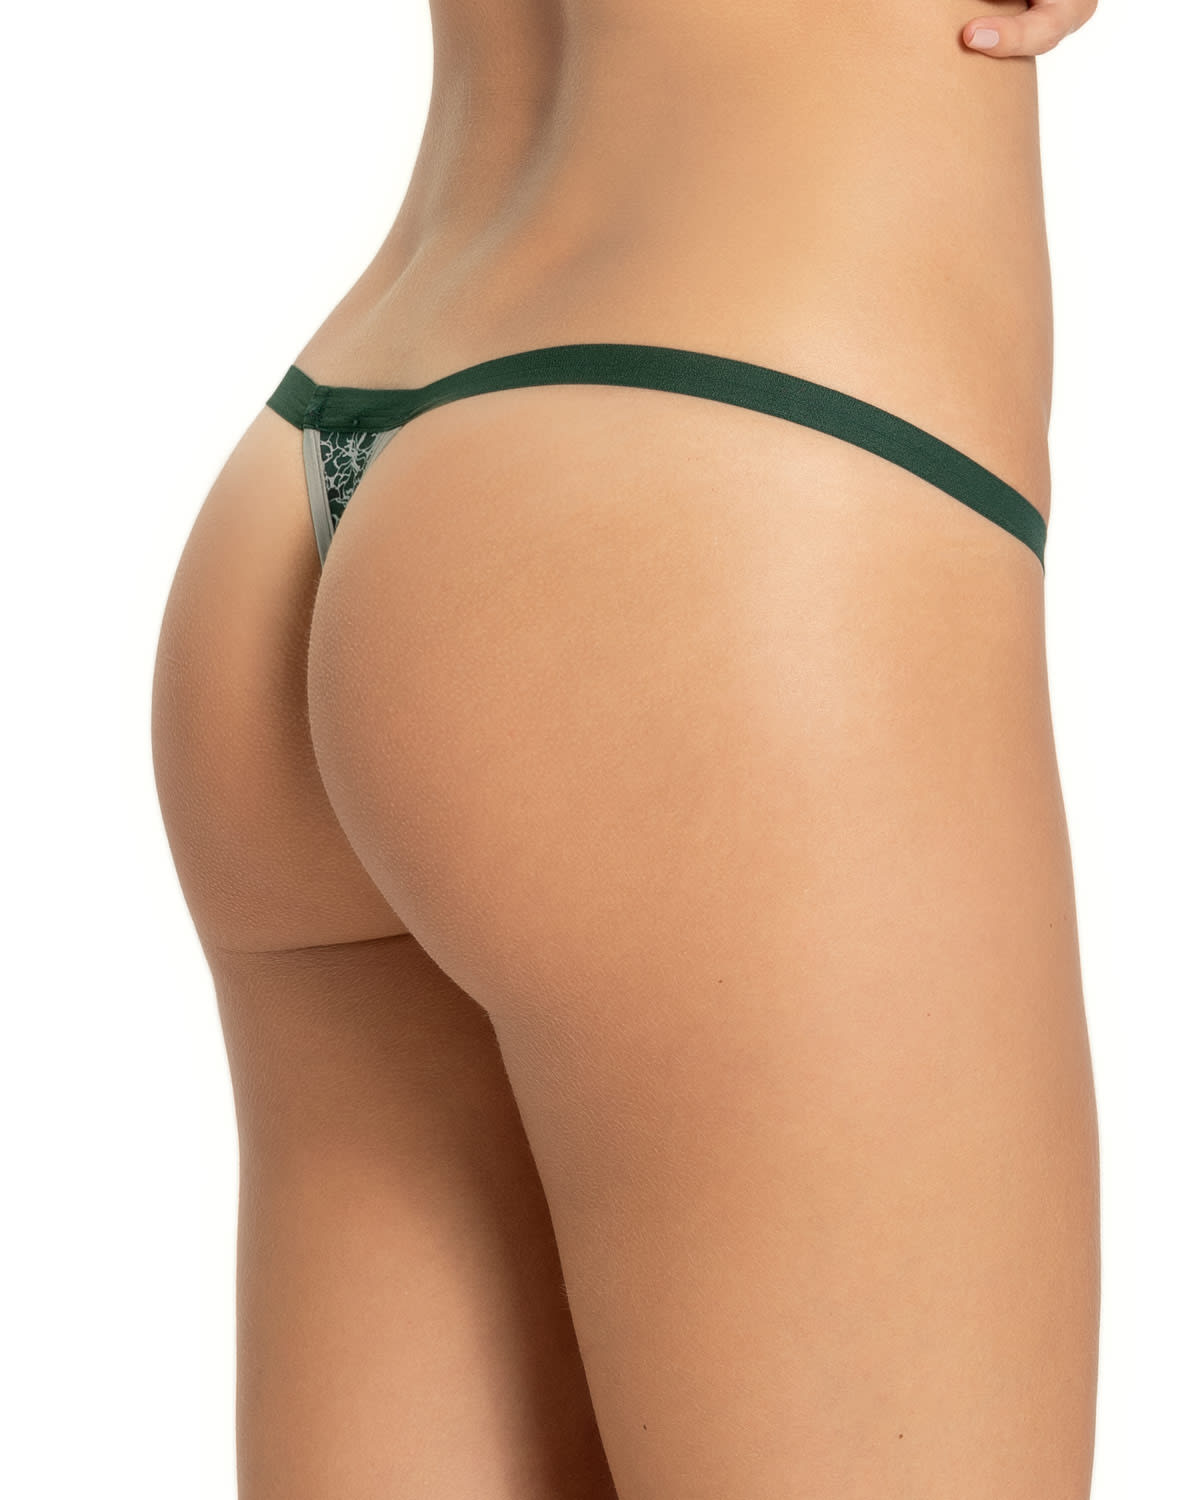 15e5f1f9652 3-Pack Invisible G-String Thong Panties | Leonisa United Kingdom